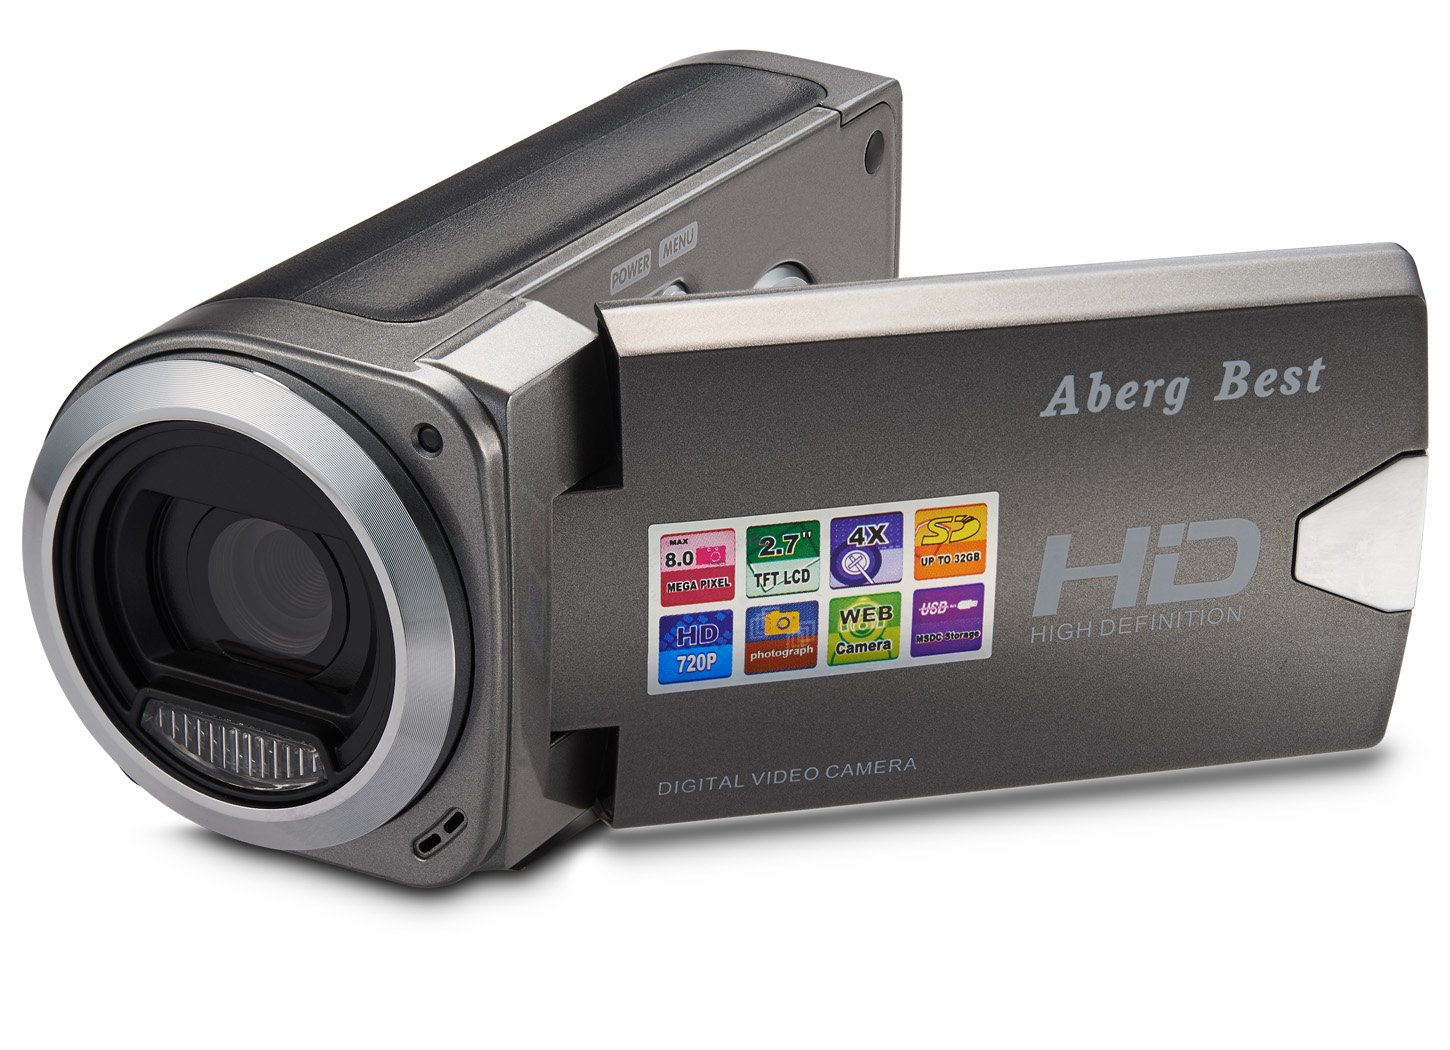 digital video camera images - photo #11